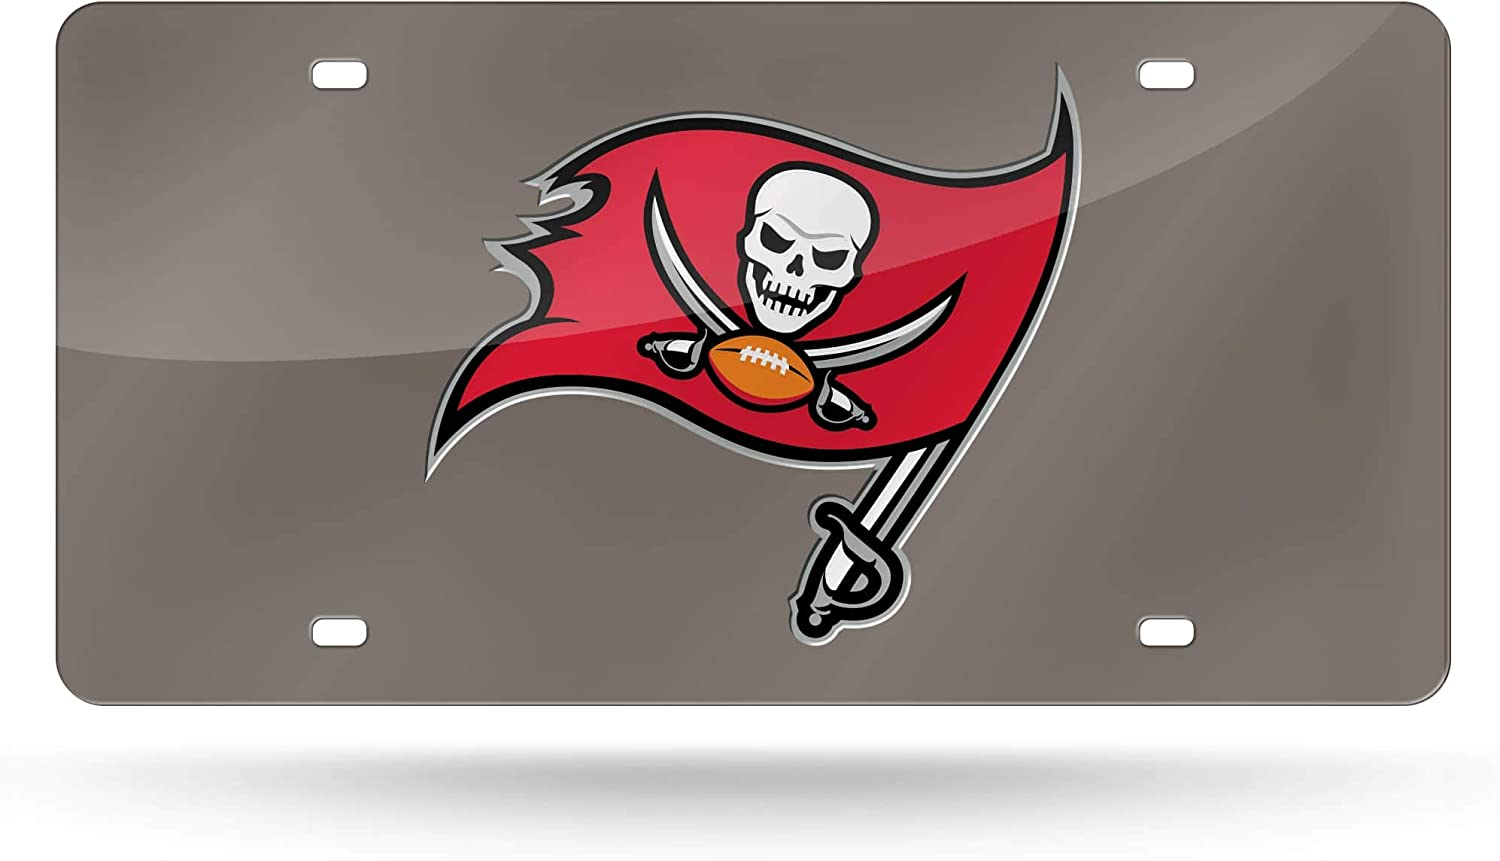 New Tampa Bay Buccaneers NFL Football League License Plate Plastic Frame Car Tag